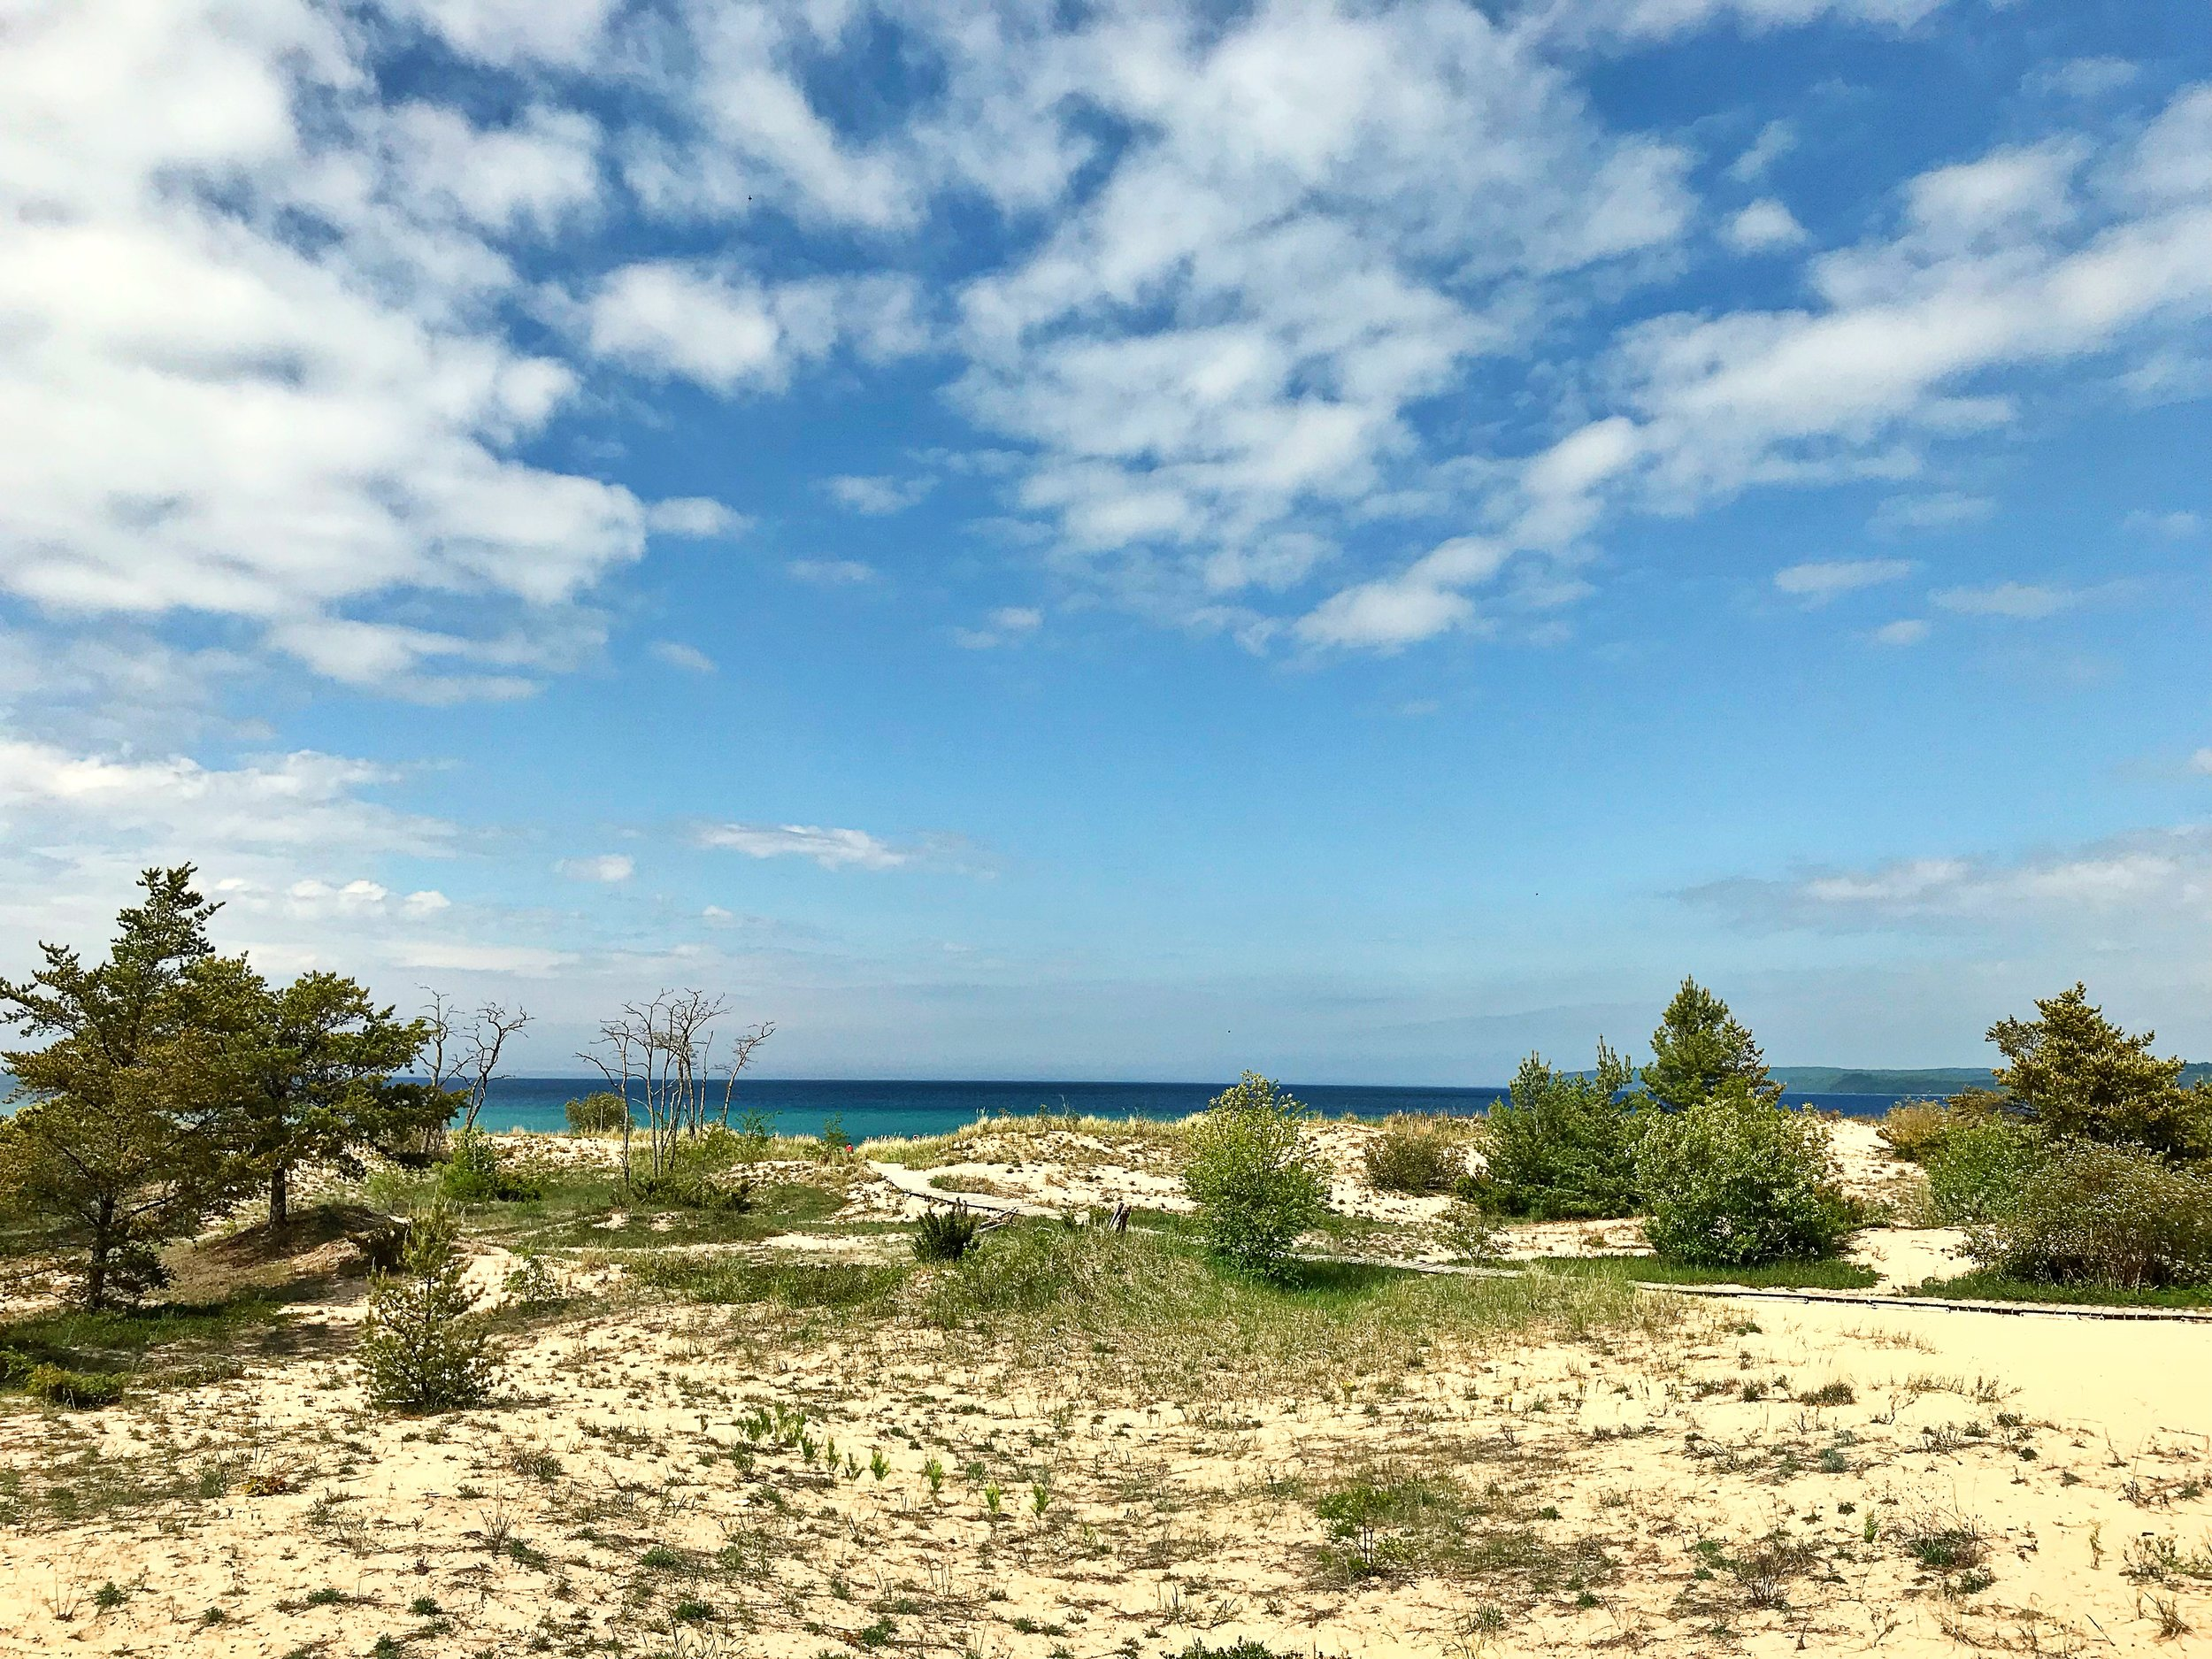 My first views of the dune habitat and the pristine waters of Lake Michigan. DH Day campground, Sleeping Bear Dunes National Lakeshore, MI.